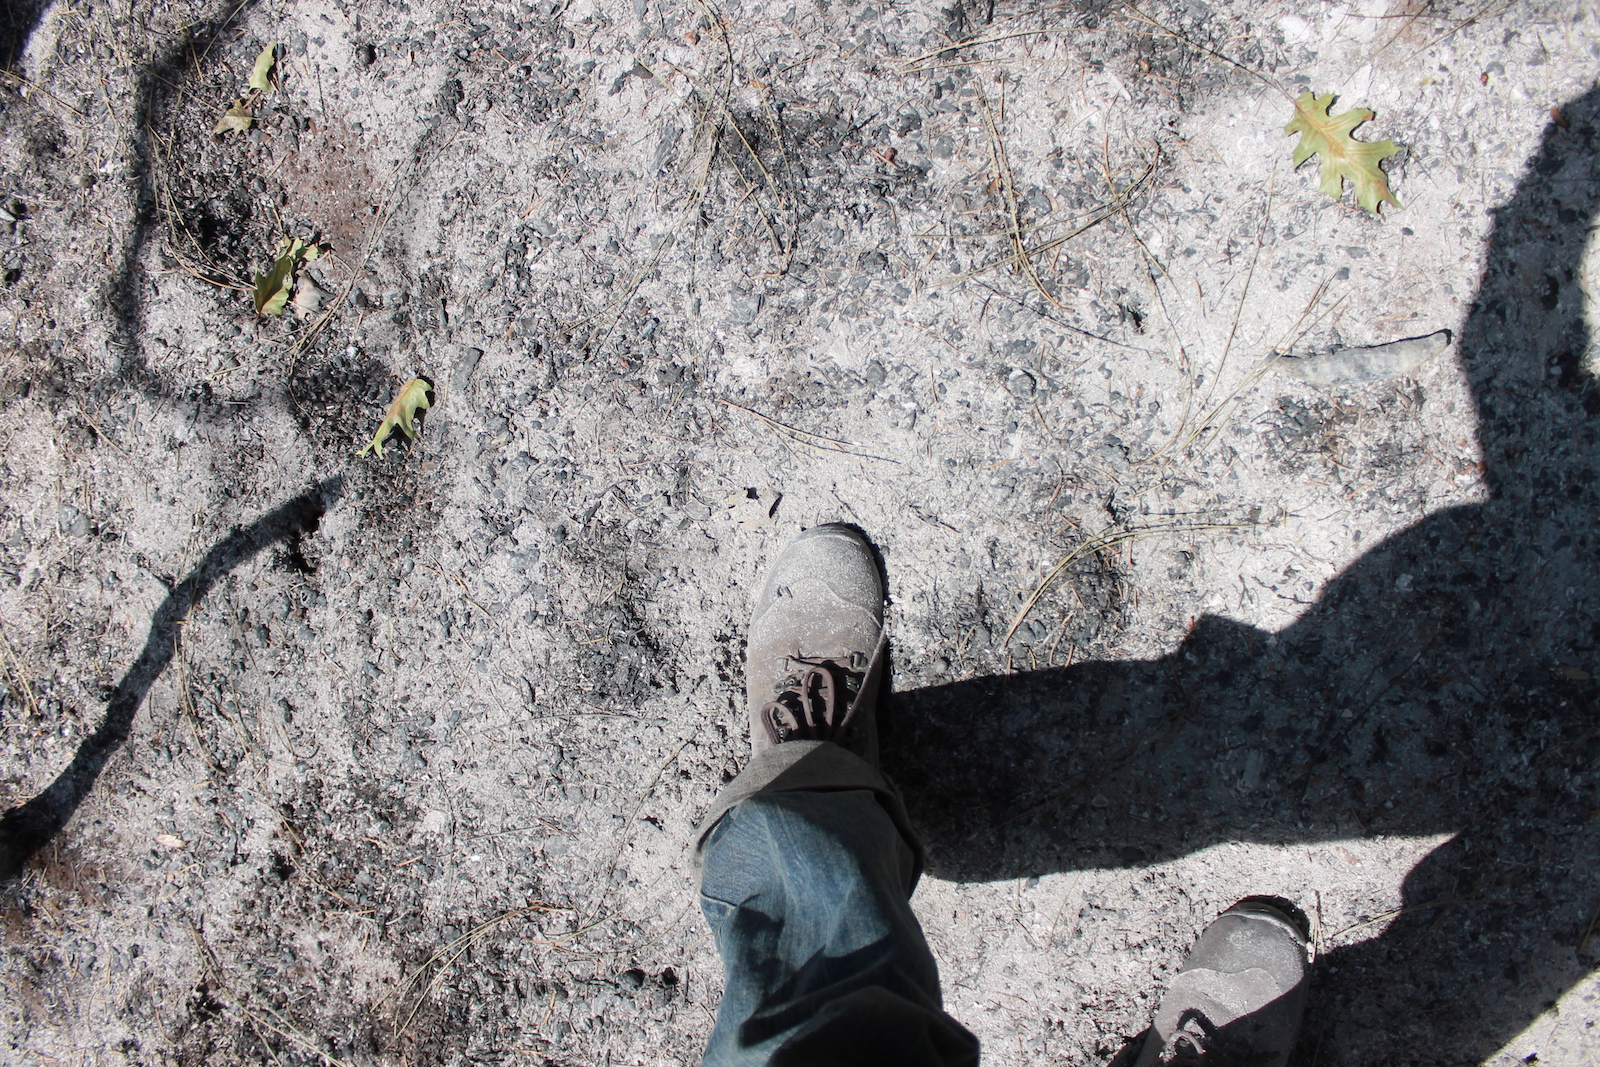 a downward-facing show of a hiking boot and leg with blue jeans walking over gray cracked ash